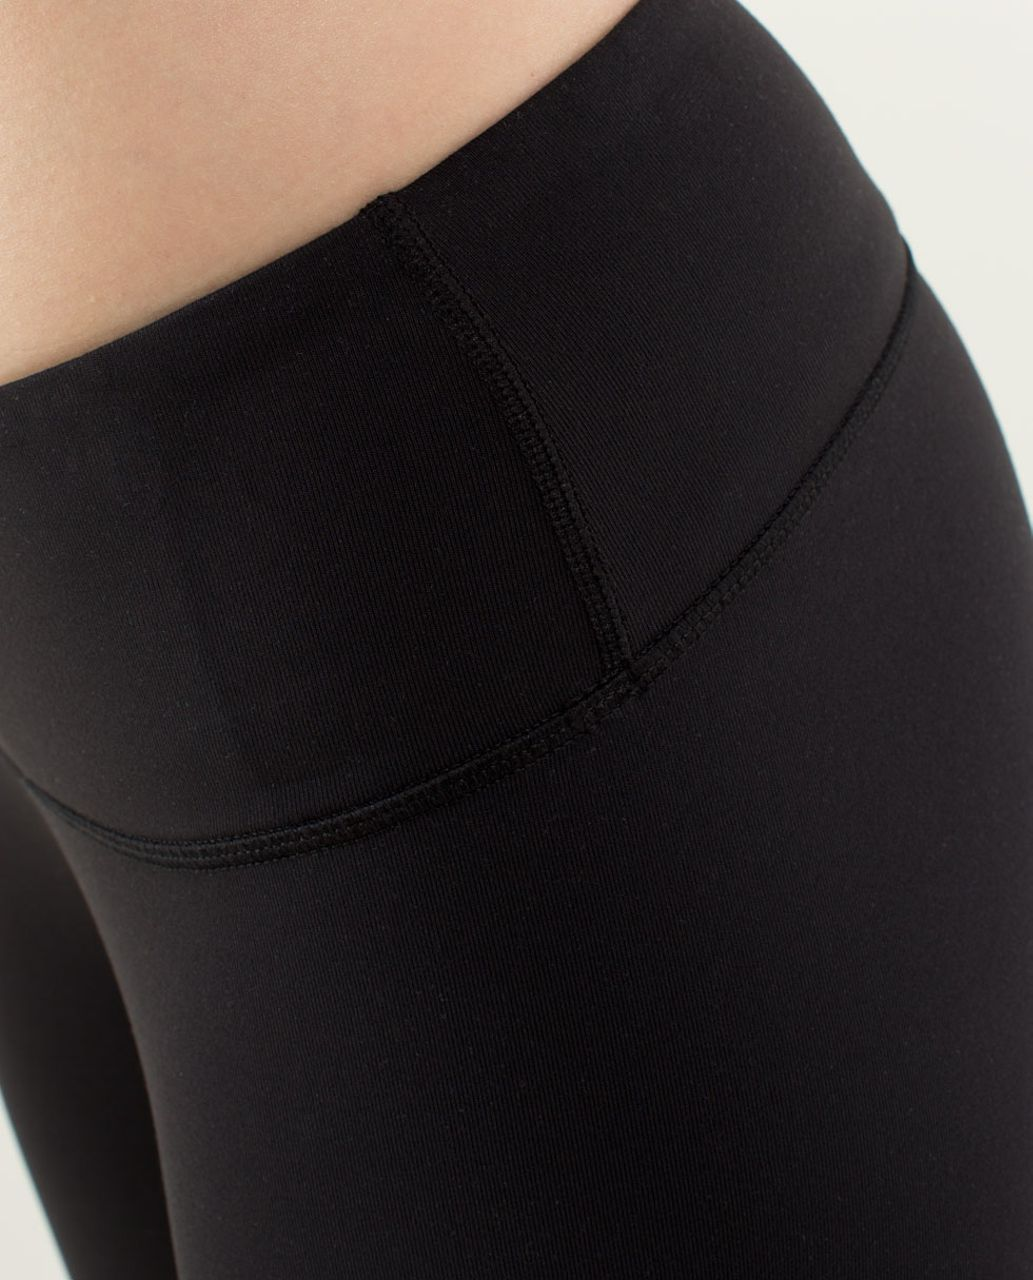 Lululemon Wunder Under Pant (Print) *Full-On Luon - Black /  Black